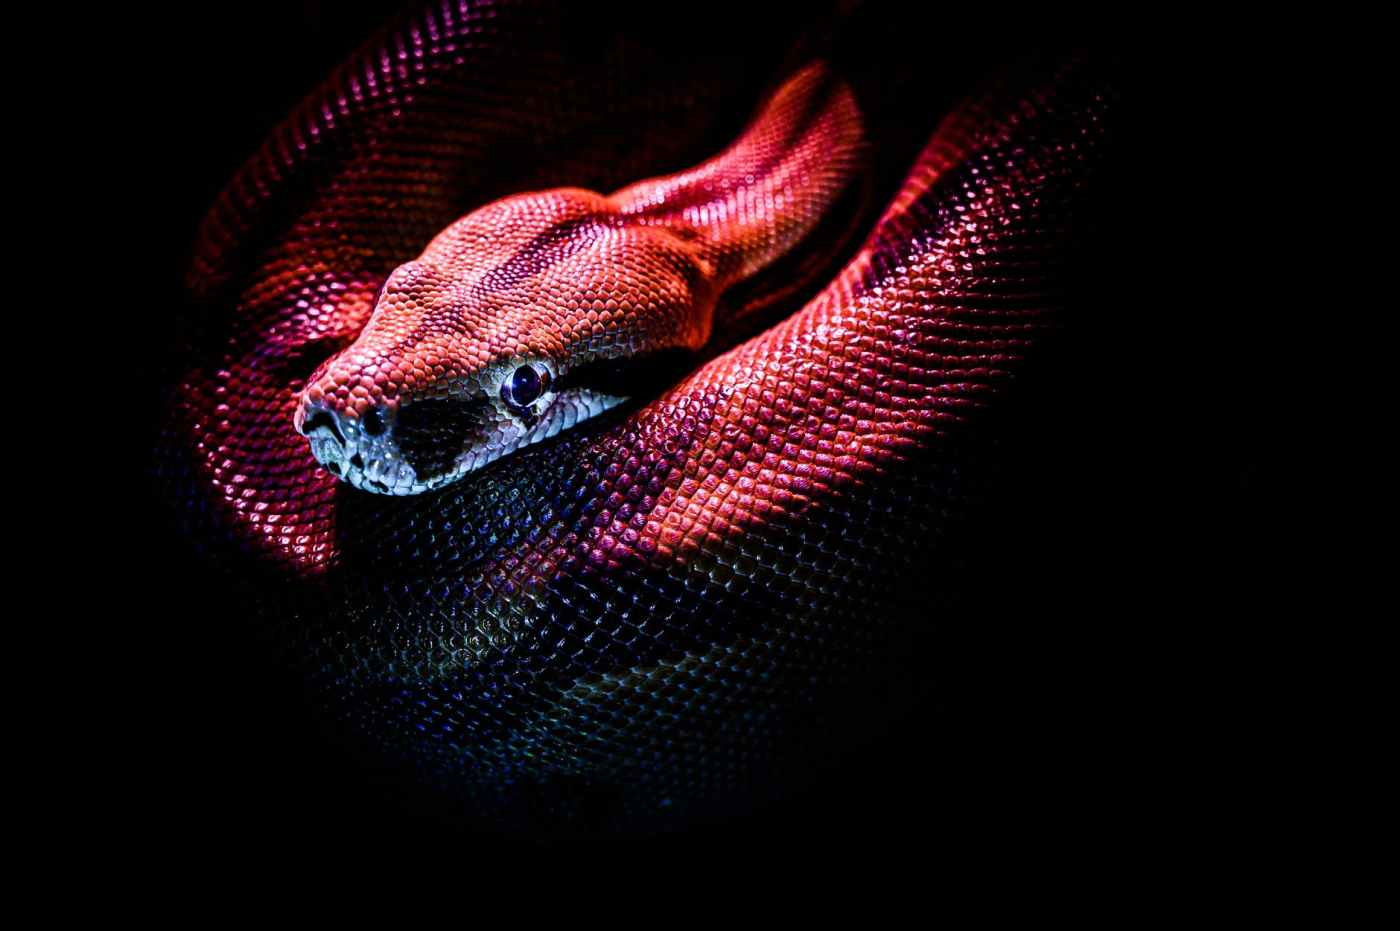 Python image from pexels